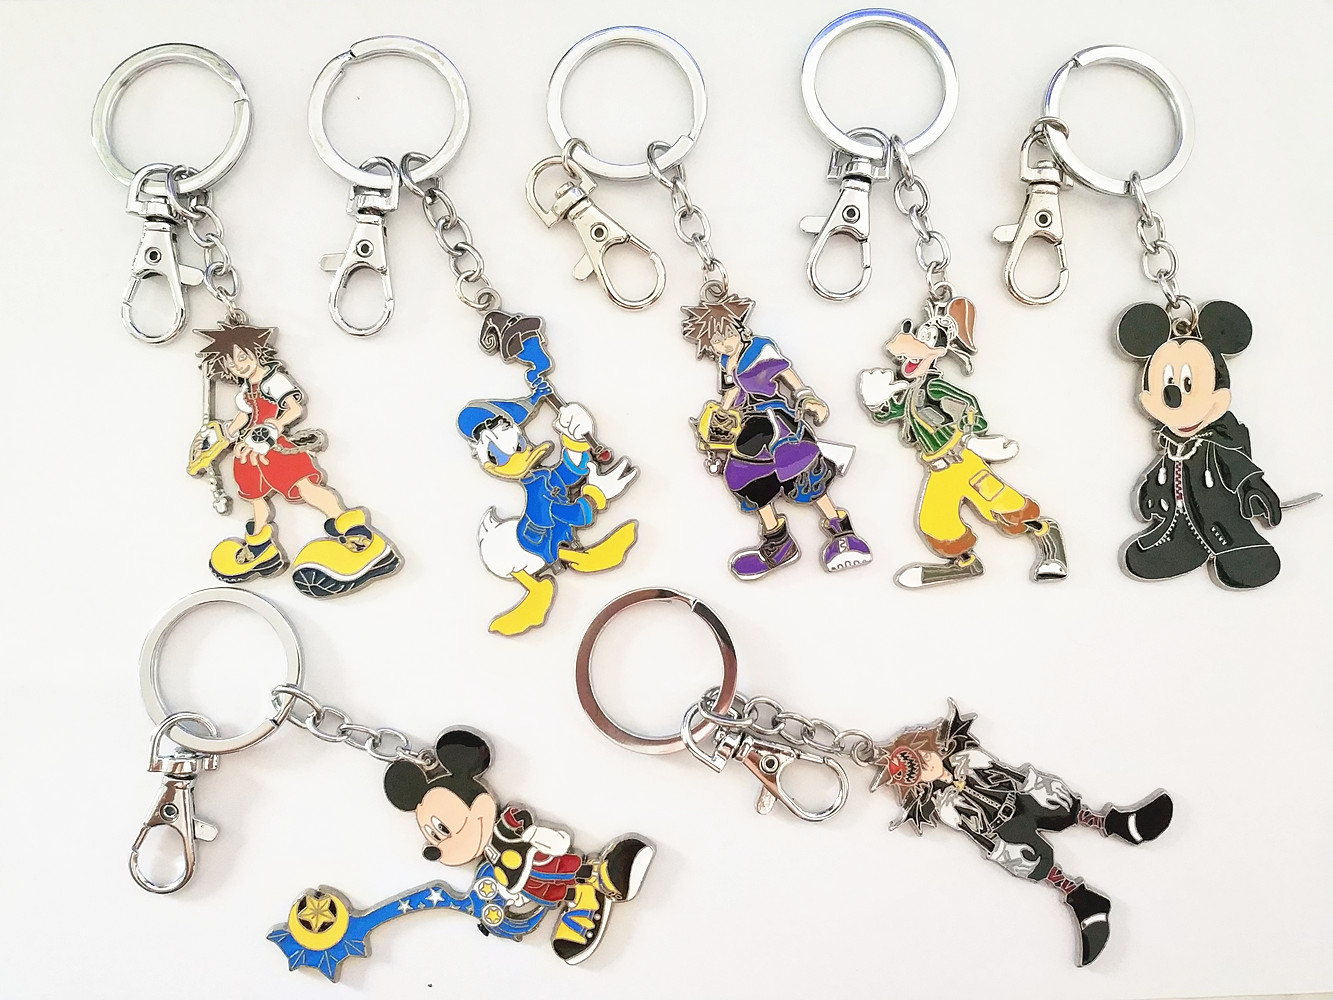 Game Kingdom Hearts Figure Mobile Chain Key Chains Keychain Necklace Metal Pendant Keyring Cosplay